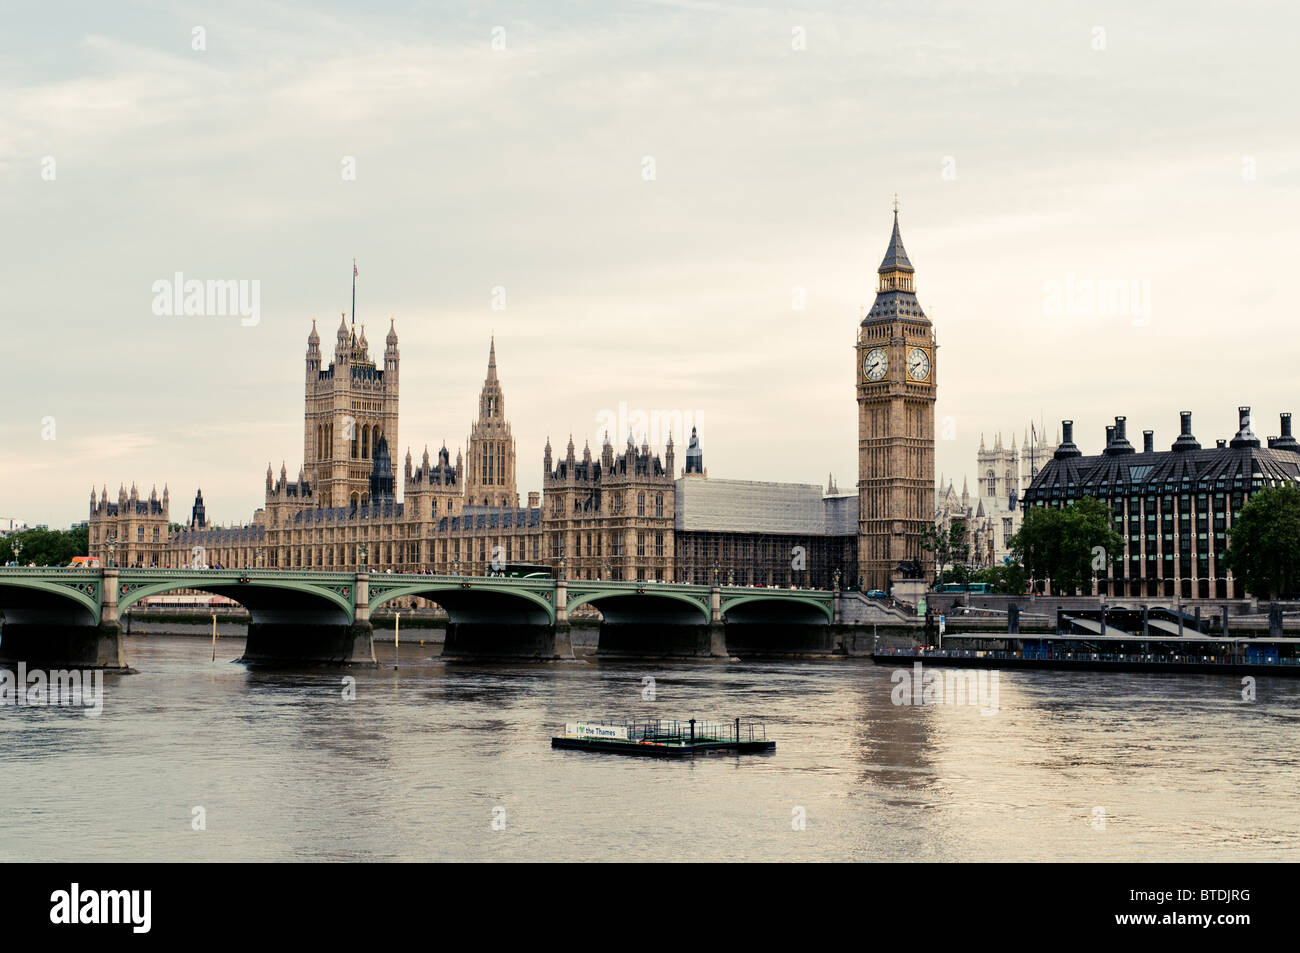 buckingham palace in london england thames river and big ben shown stock photo royalty free. Black Bedroom Furniture Sets. Home Design Ideas